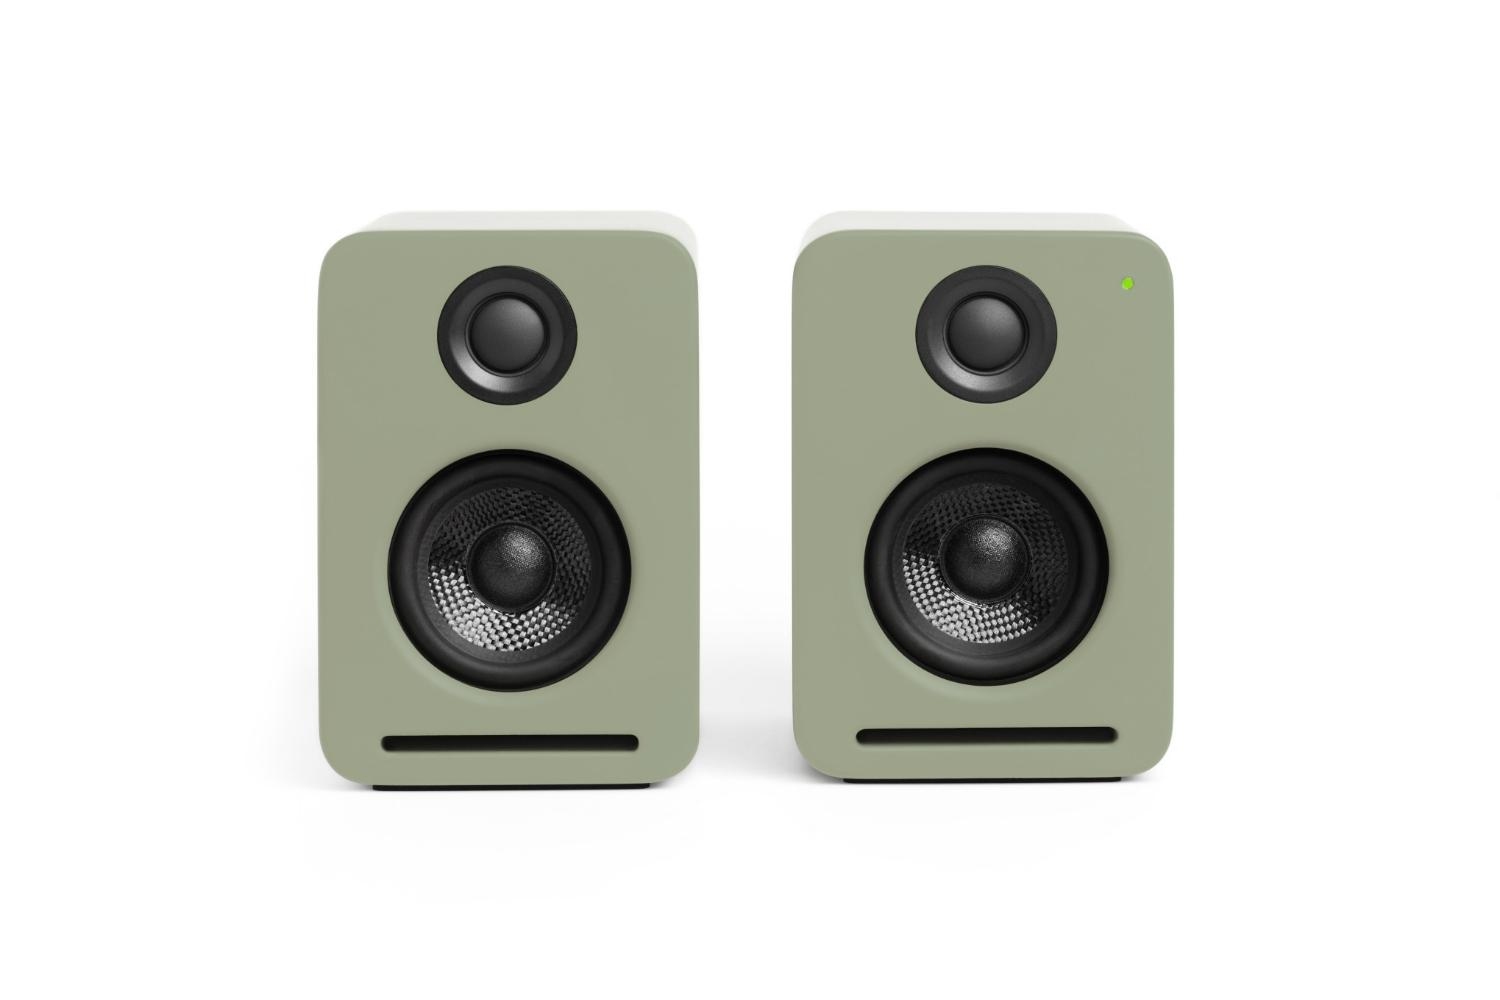 """Nocs Drops """"v2"""" of NS2 Speakers with Bluetooth and Spotify"""